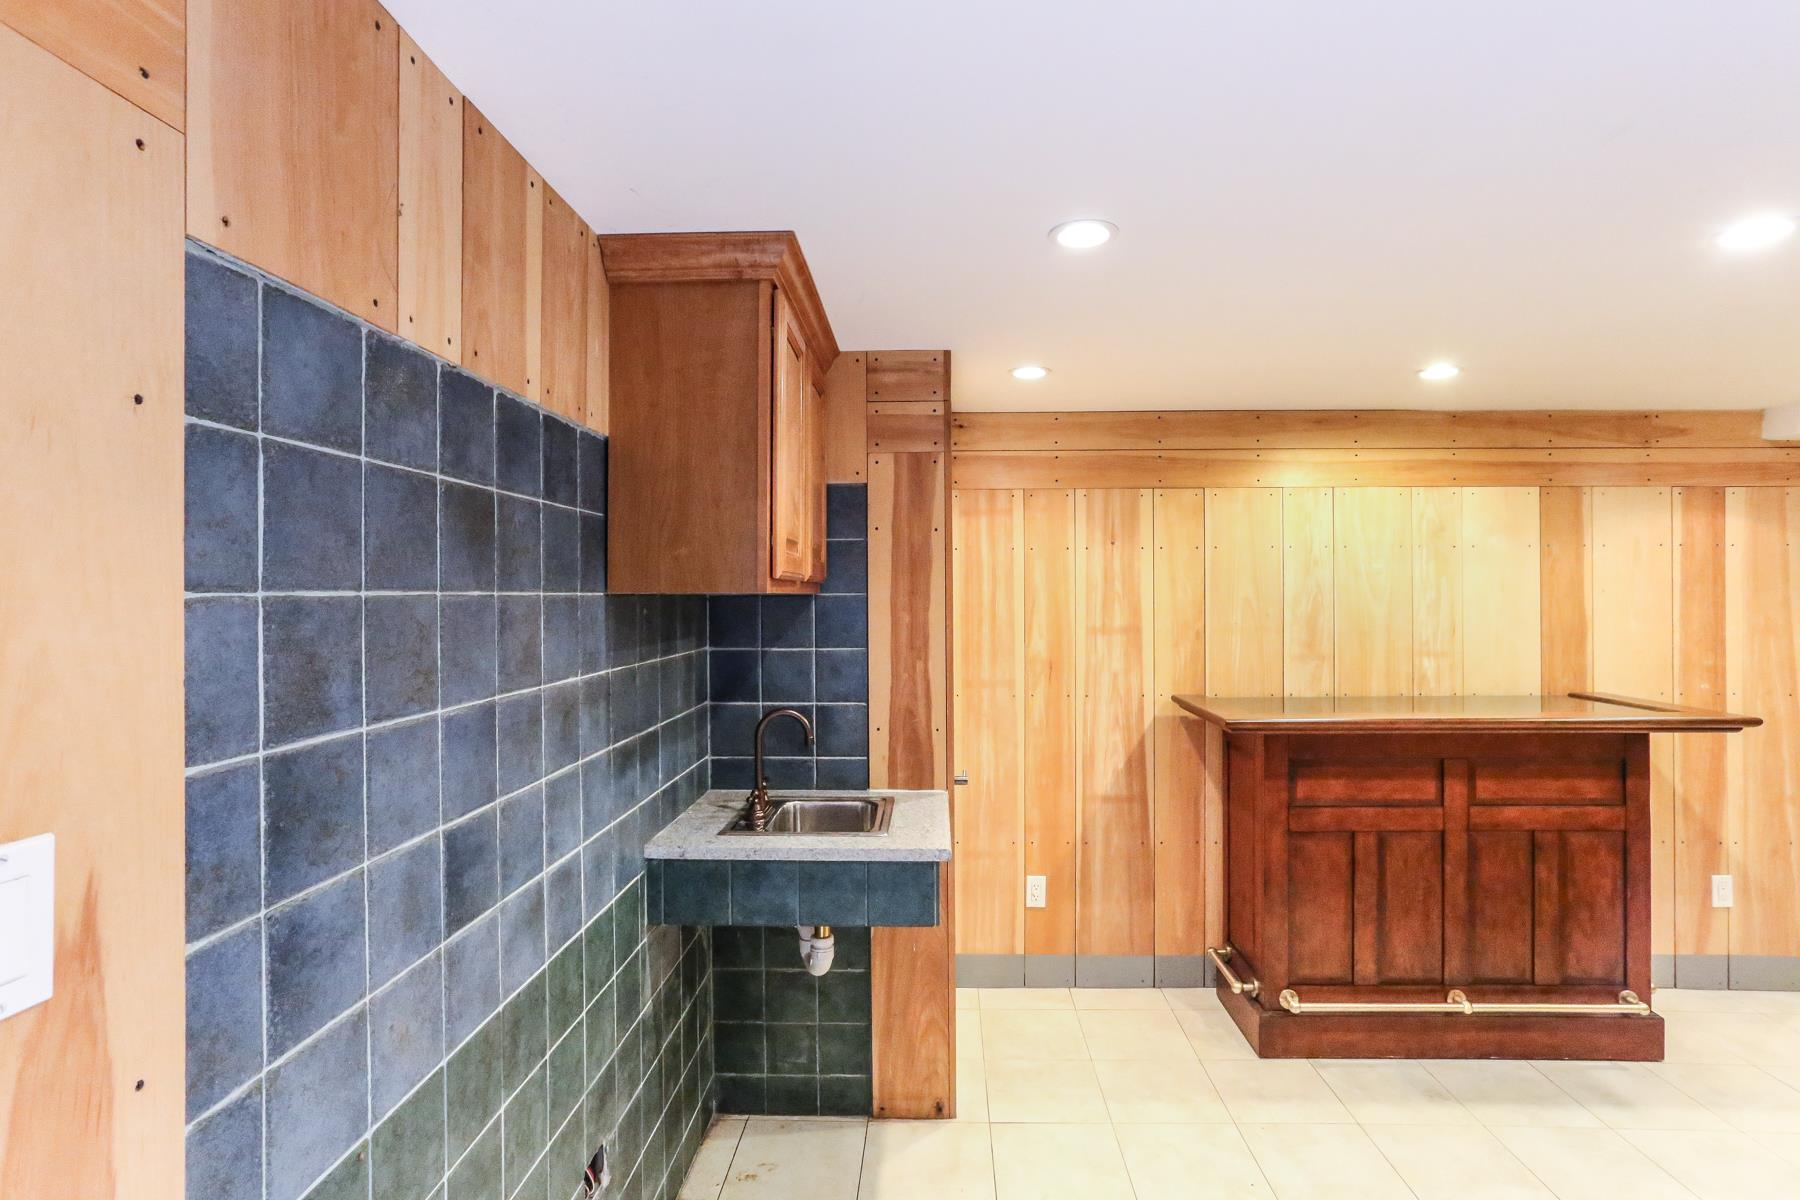 Additional photo for property listing at 14 GREENWAY TERRACE FOREST HILLS GARDENS, NYC  Forest Hills, New York 11375 United States